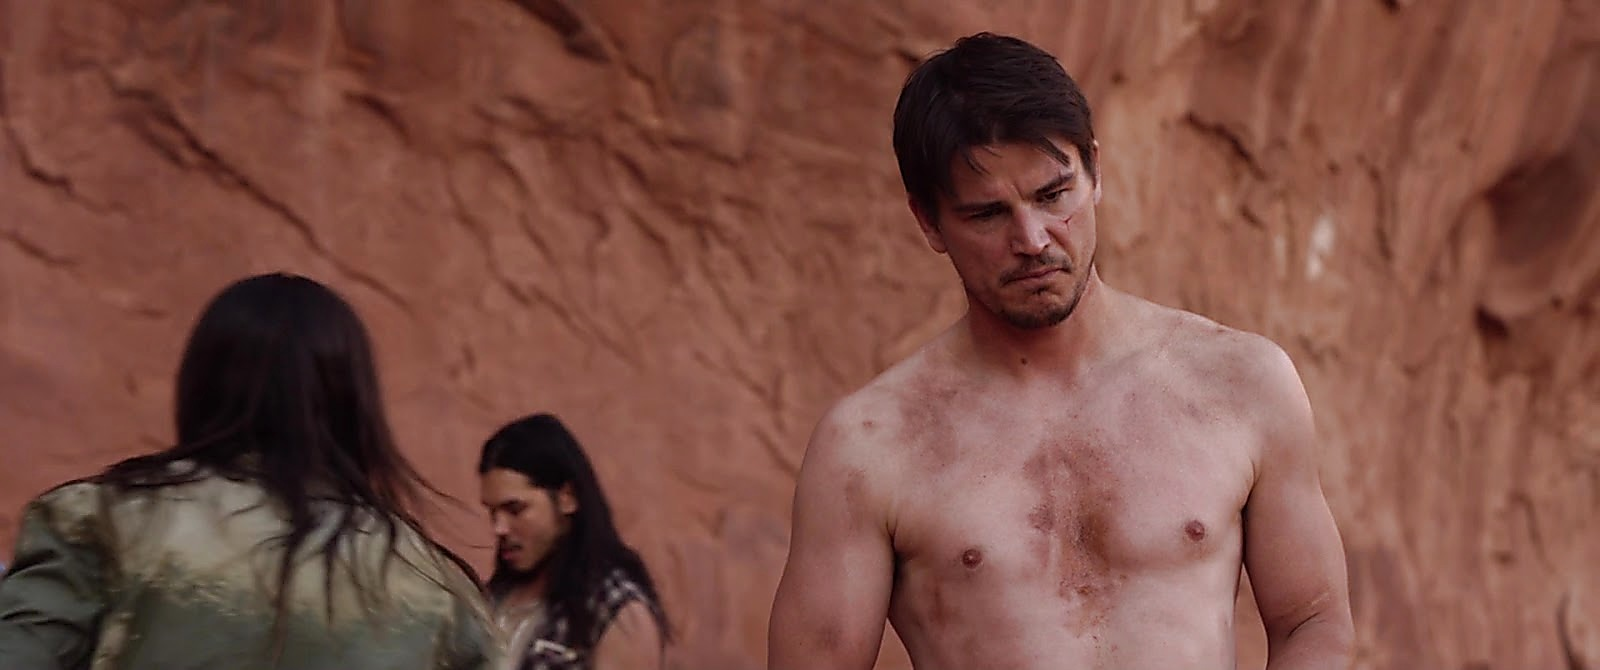 Josh Hartnett Valley Of The Gods 2020 08 01 1596272400 1